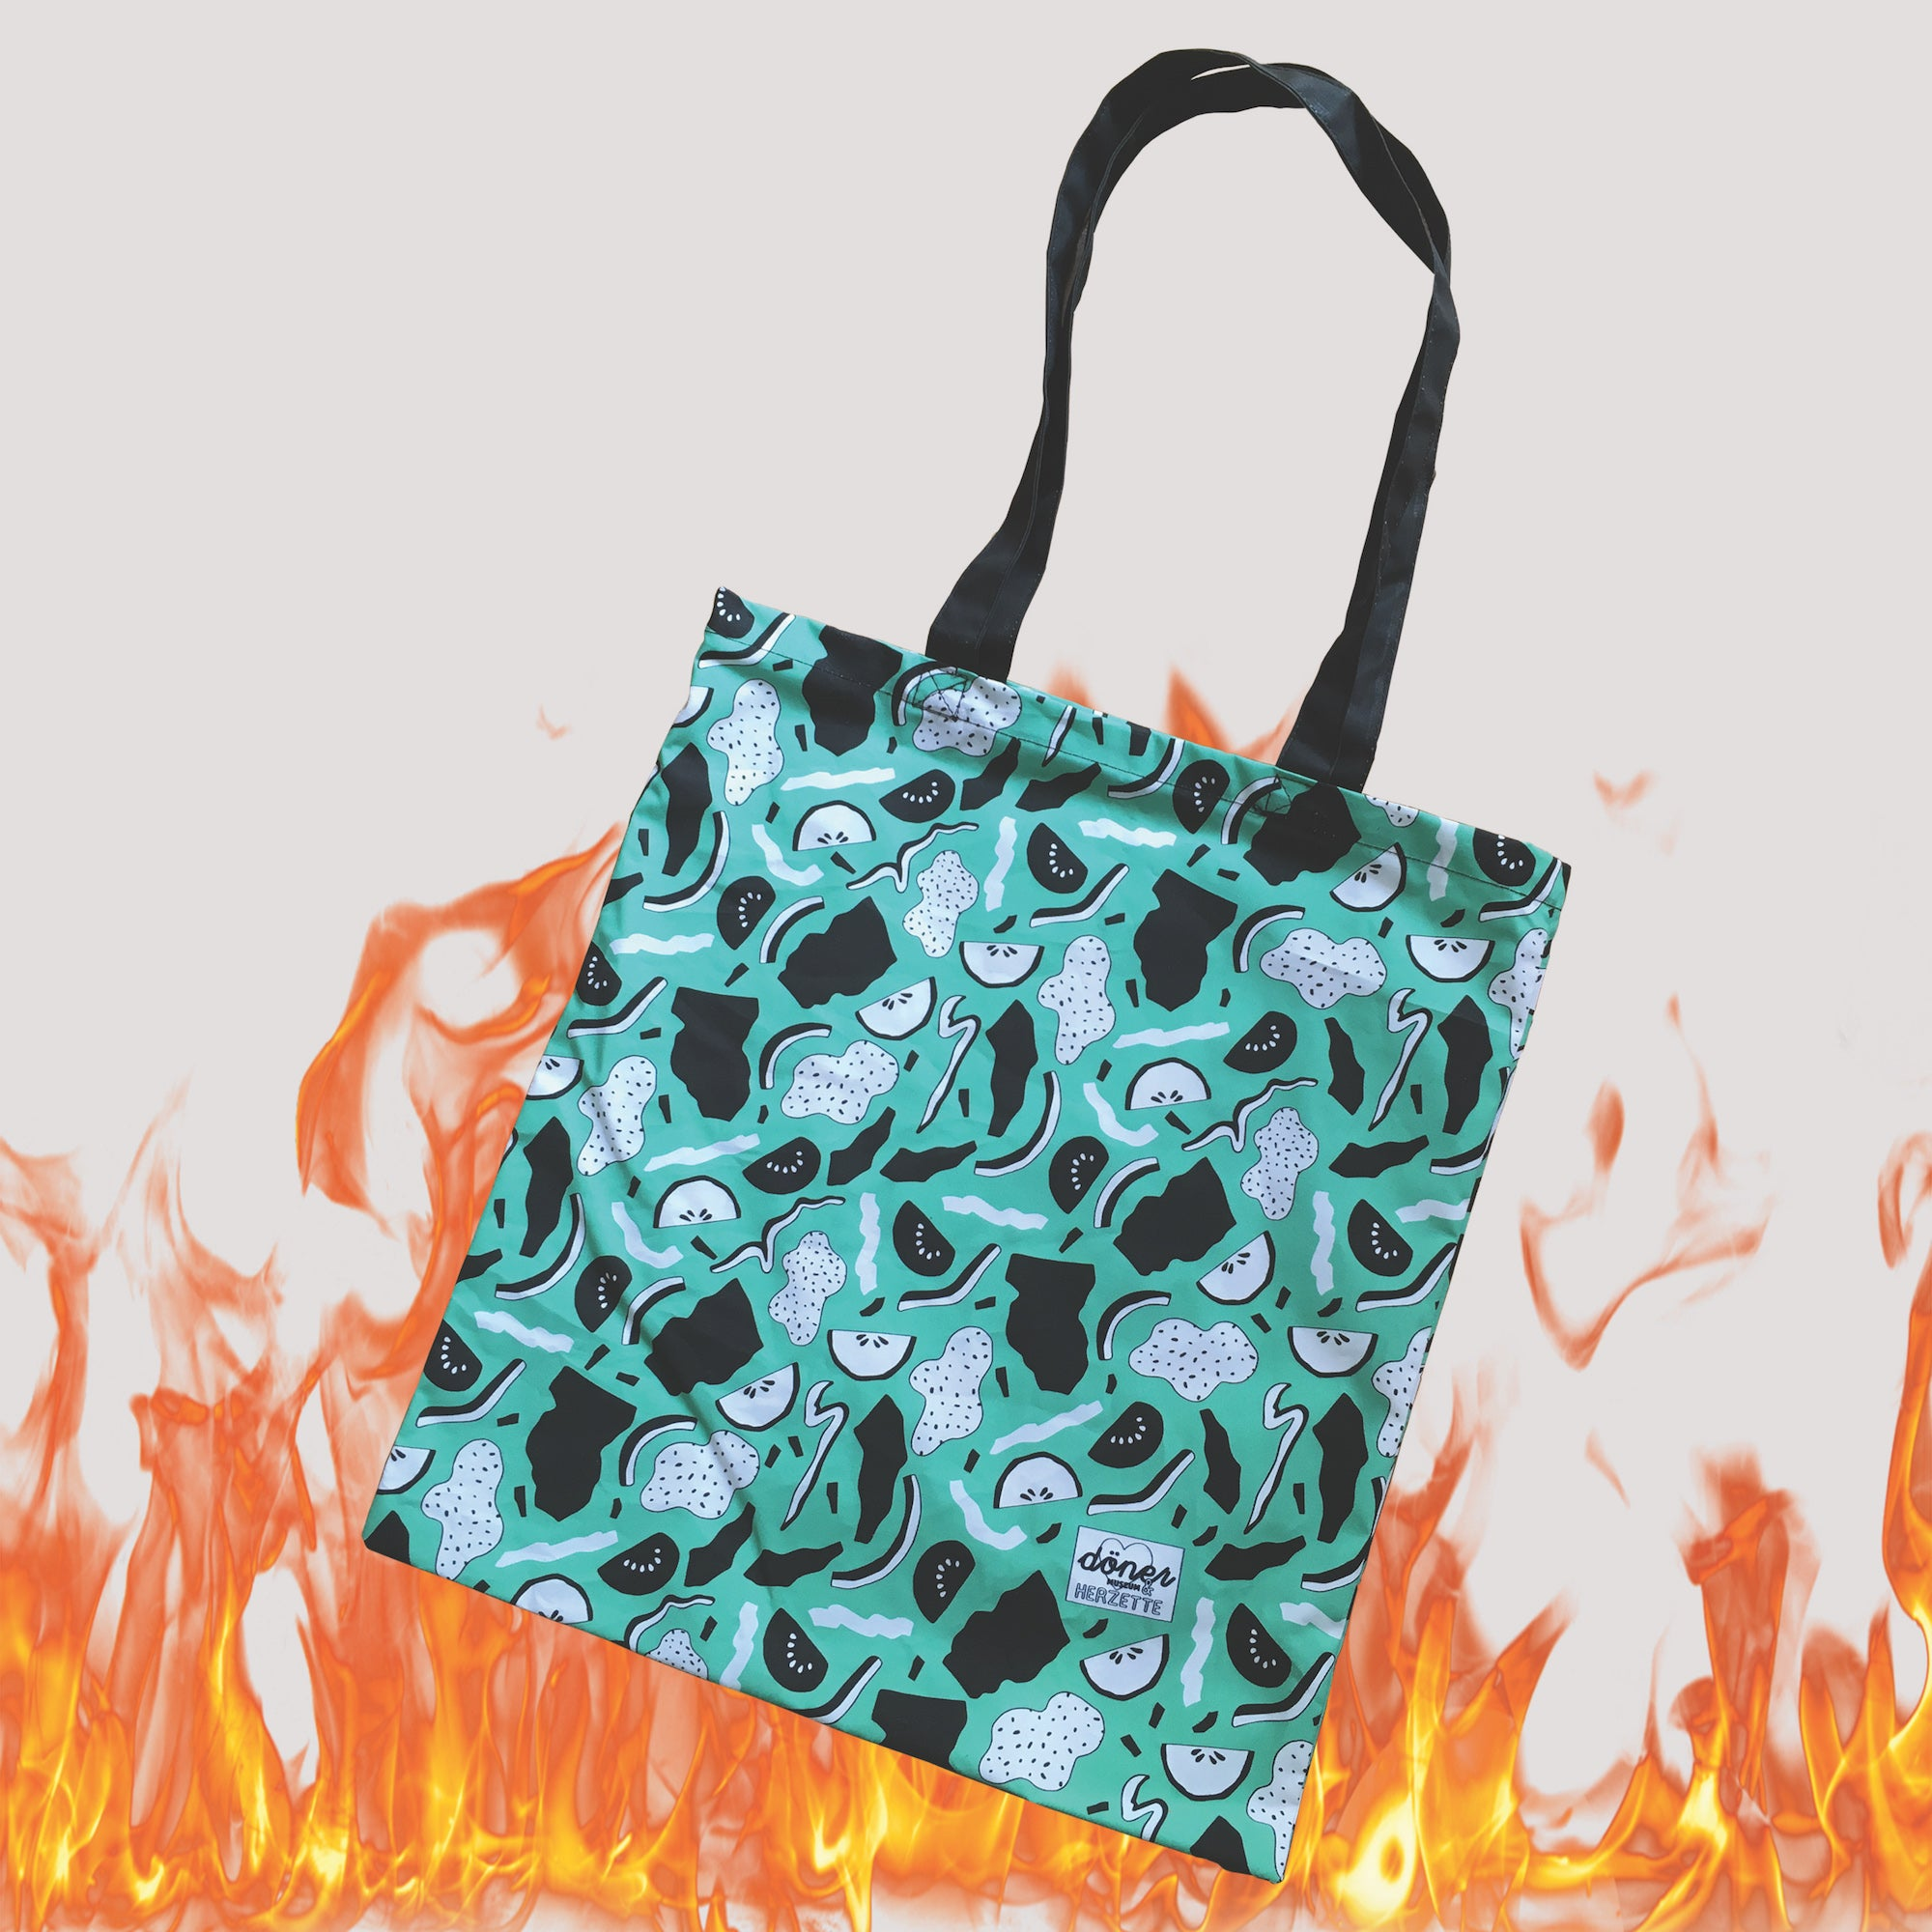 Abstract Dönerpattern - Cotton shoulder bag